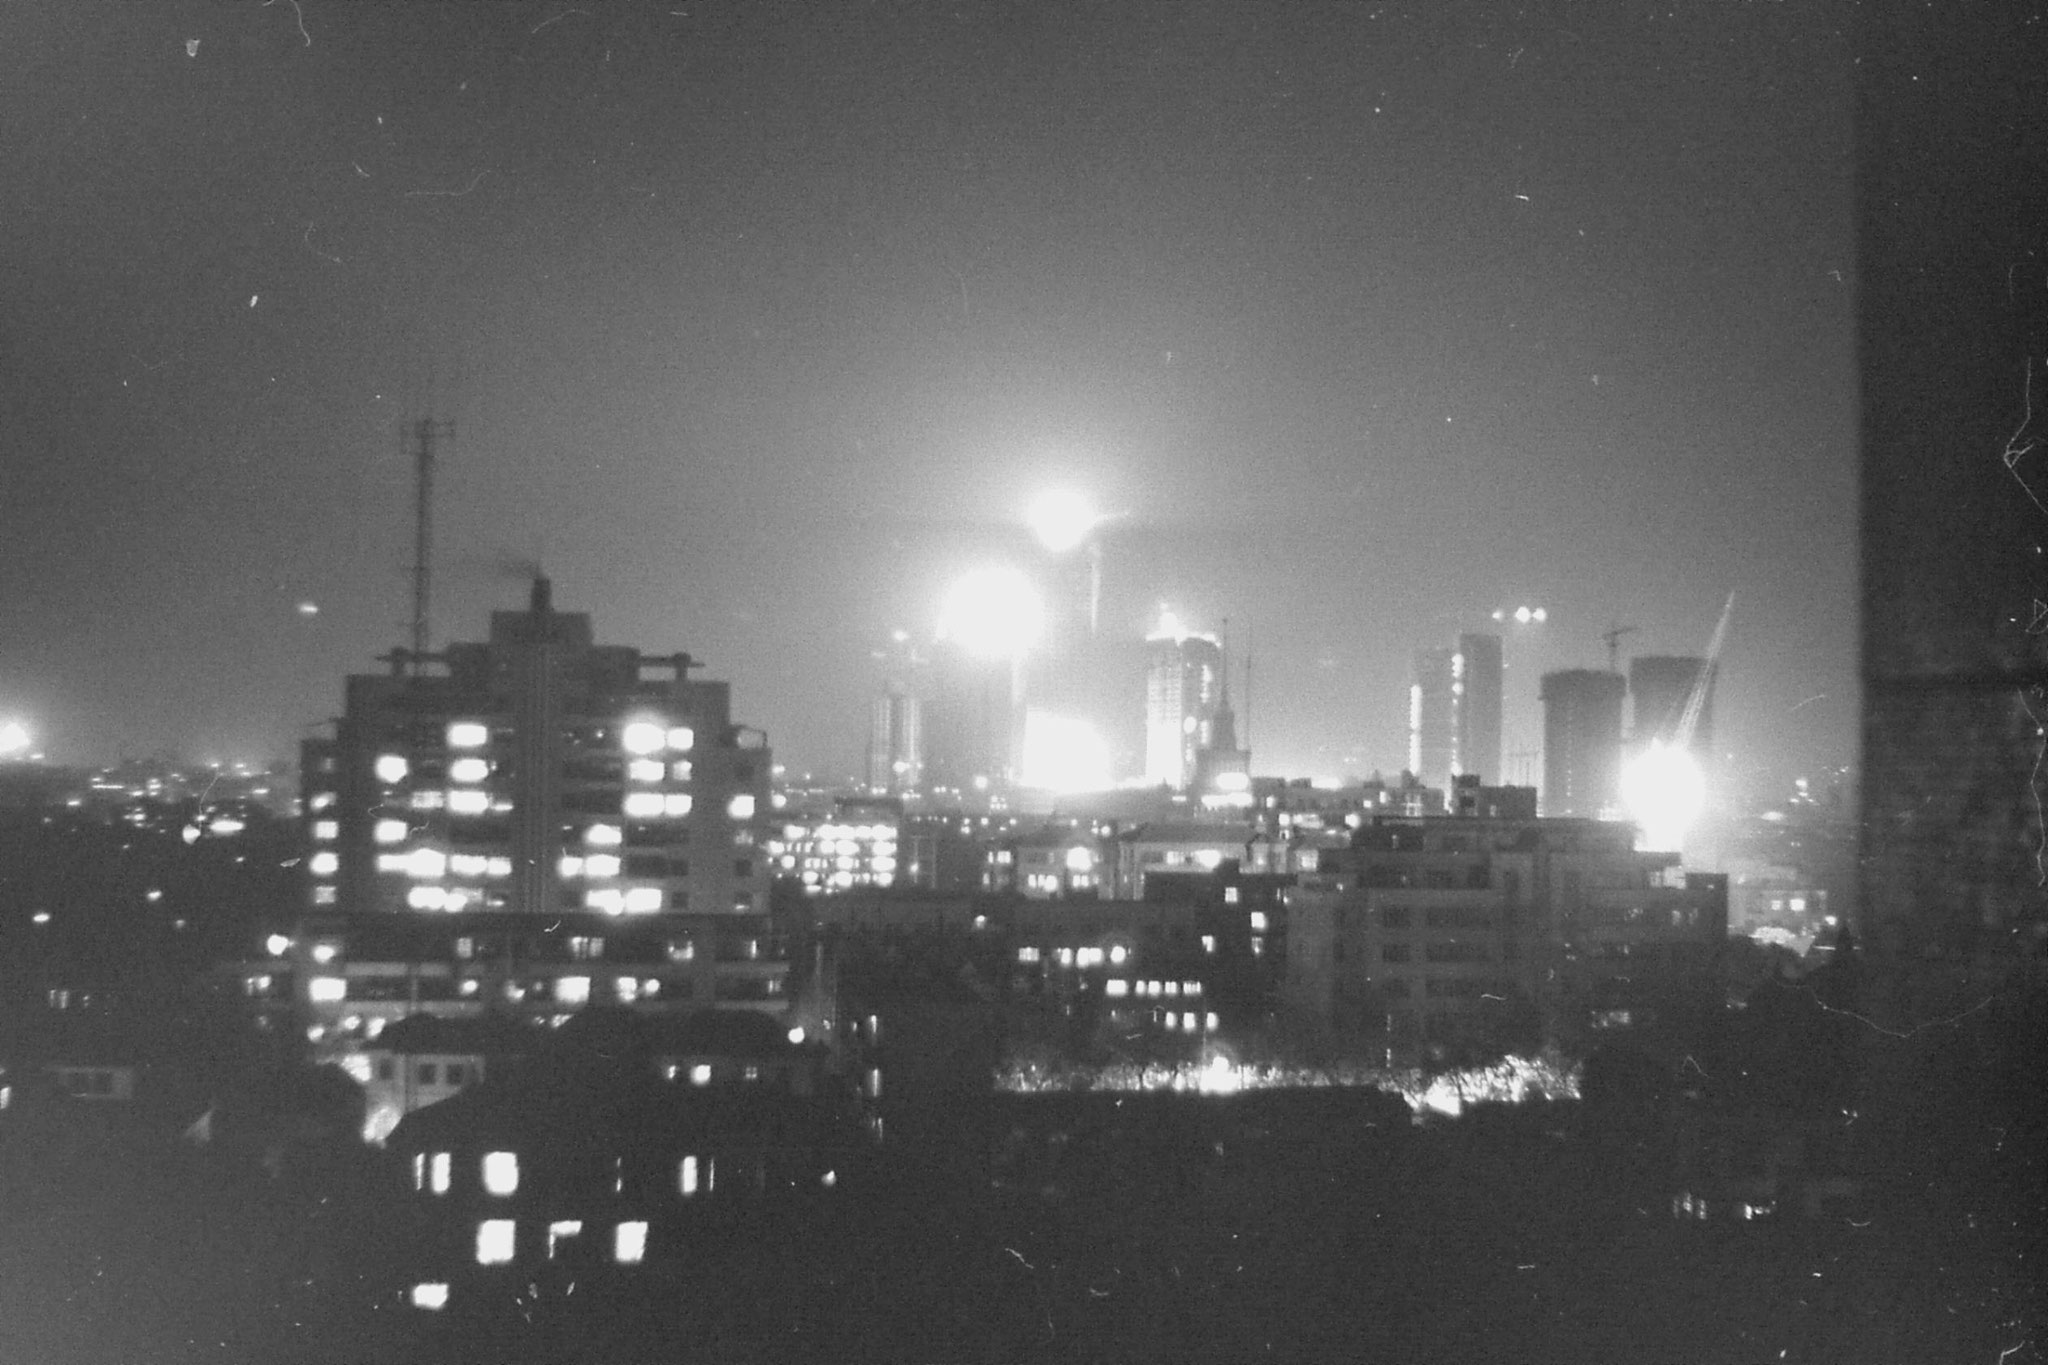 15/12/1988: 28: night view of Shanghai